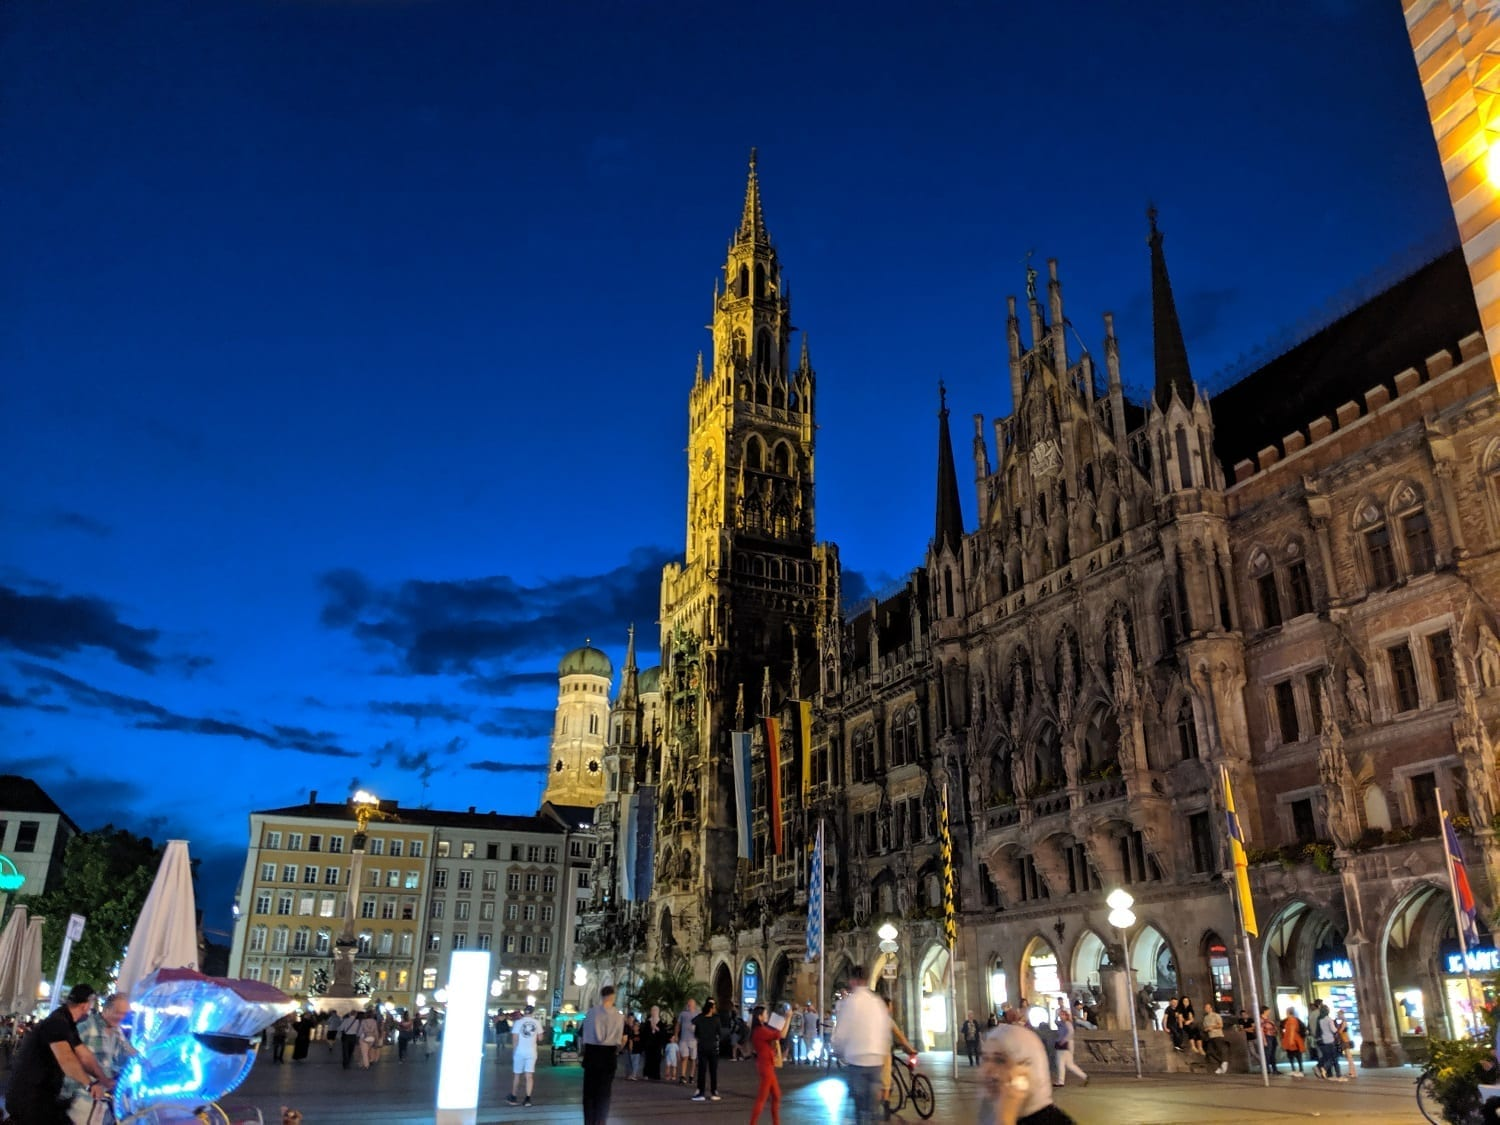 Things to see in Munich Germany – Just a Few of my Favorite Places